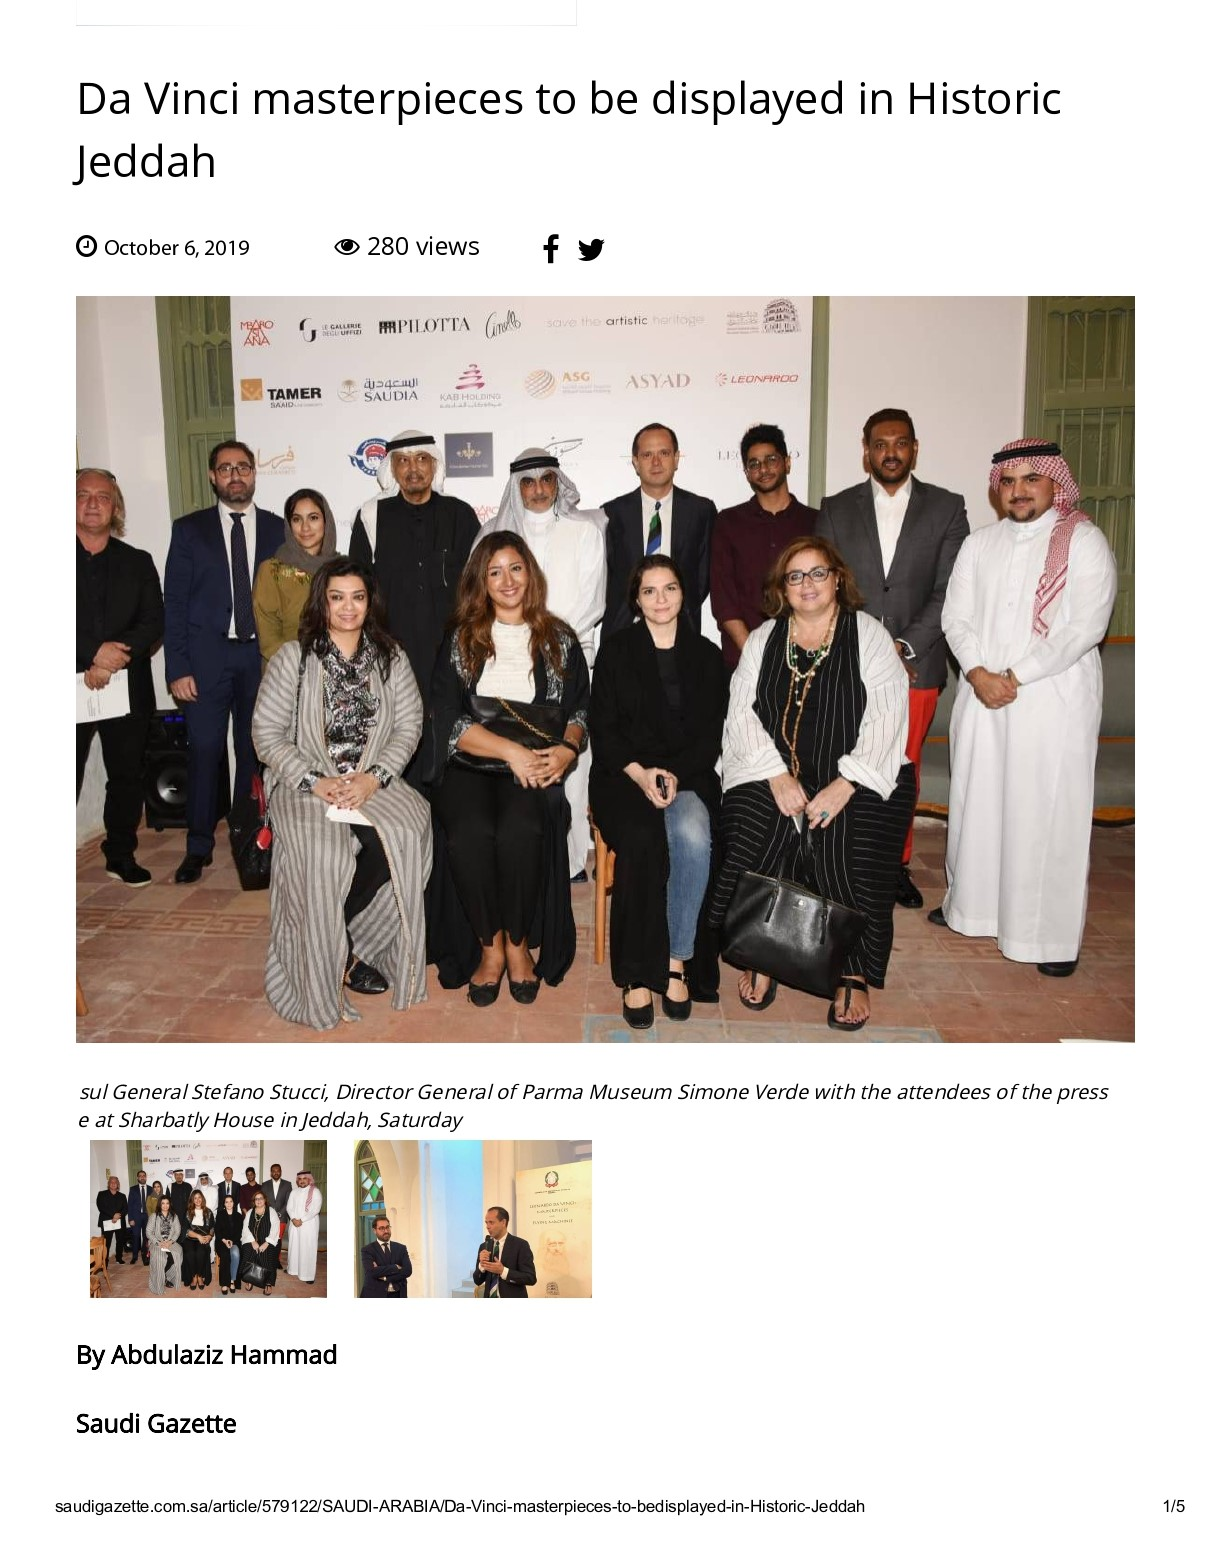 Da Vinci masterpieces to be displayed in Historic Jeddah